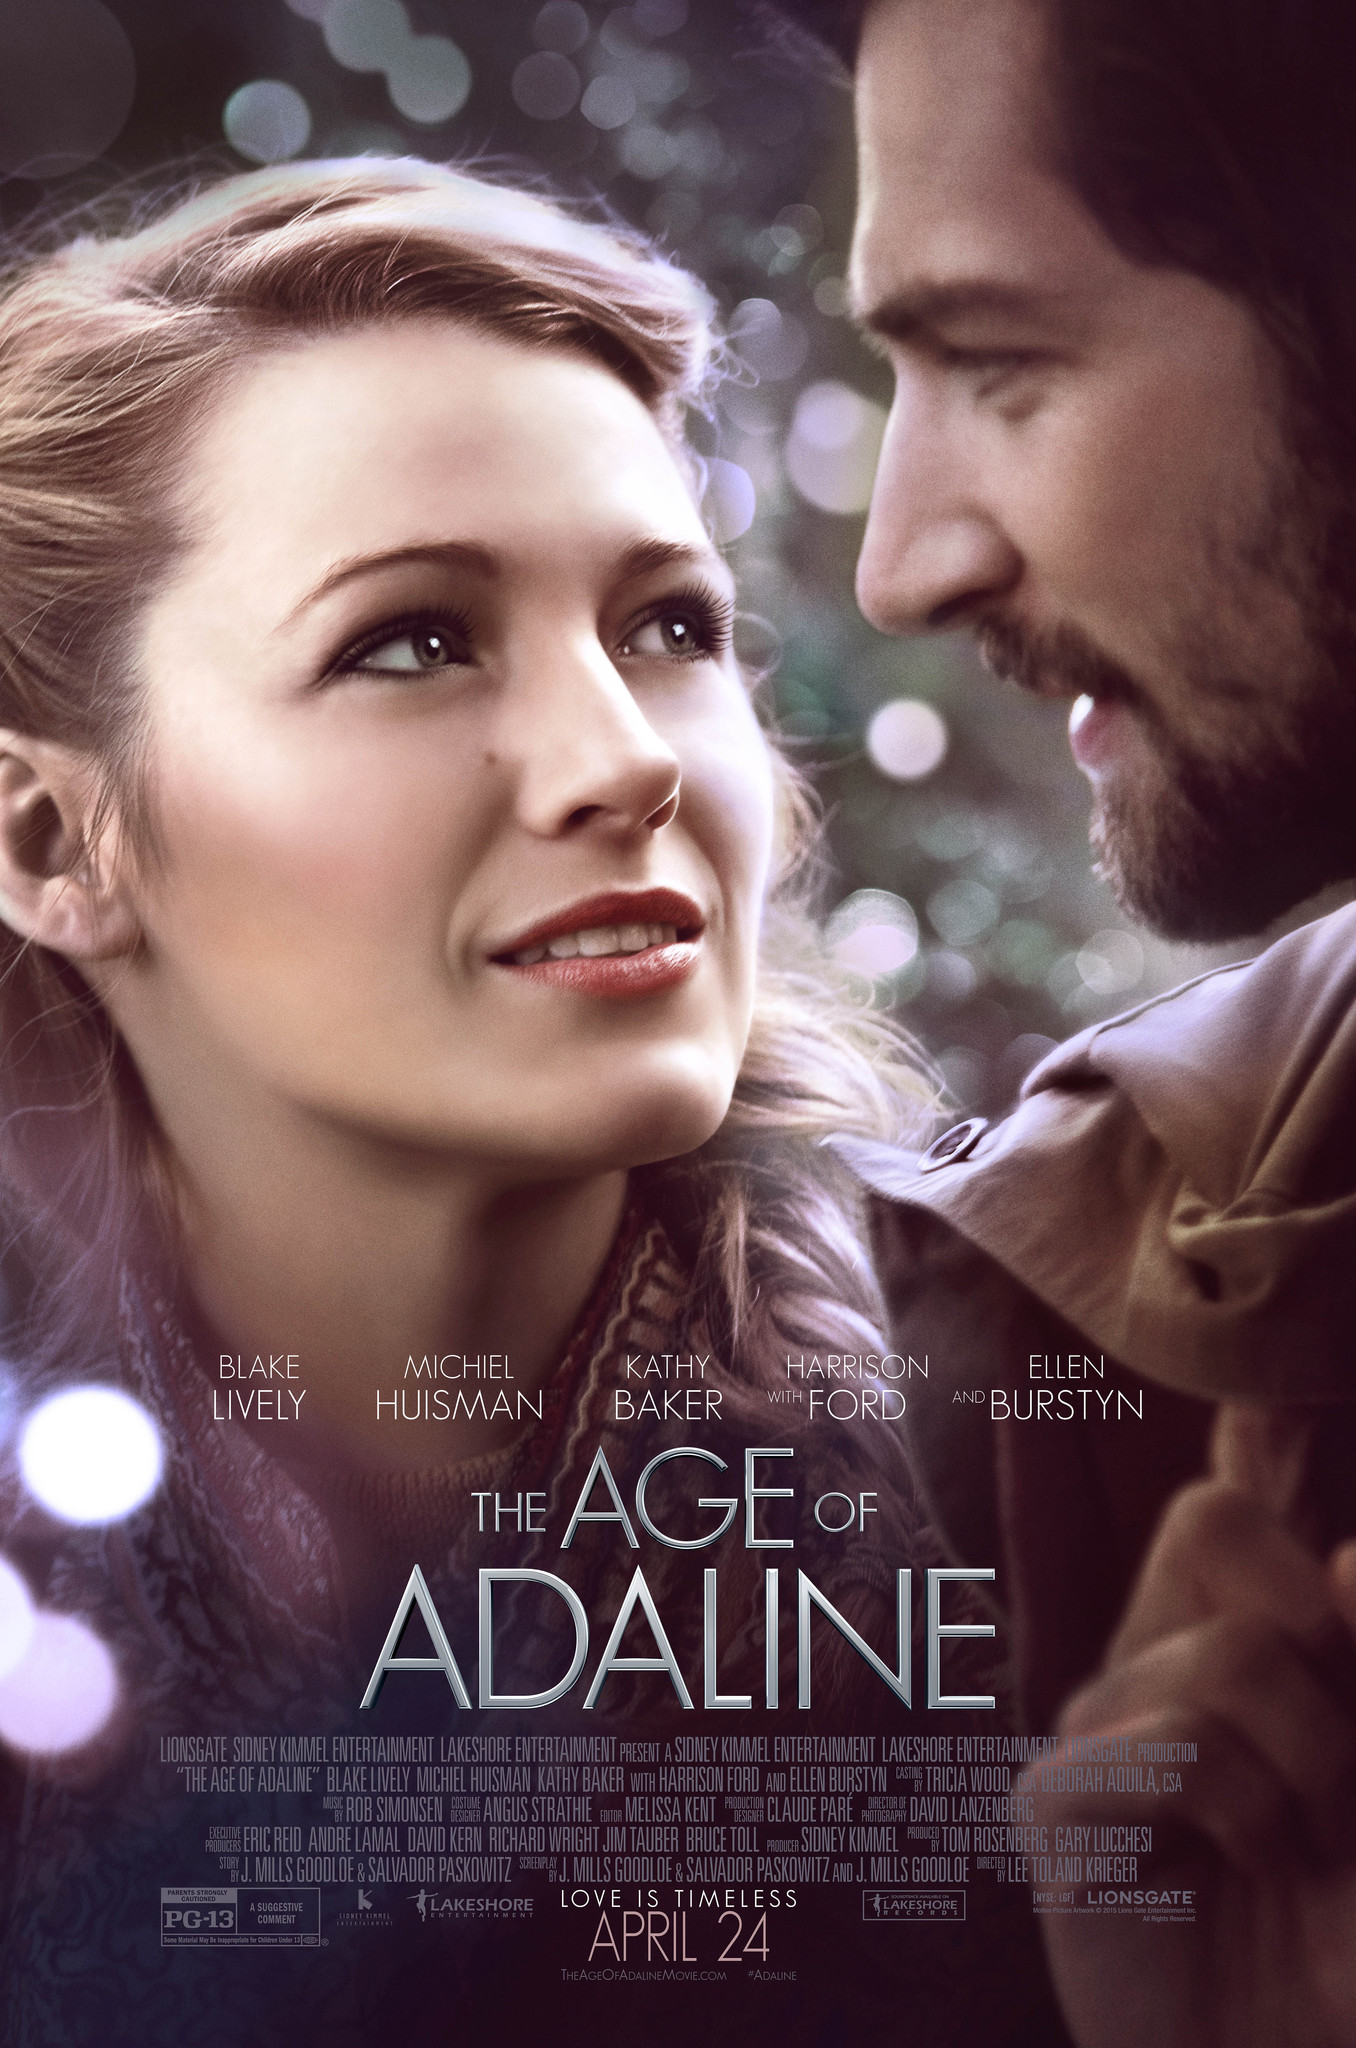 The Age of Adaline (2015) Technical Specifications